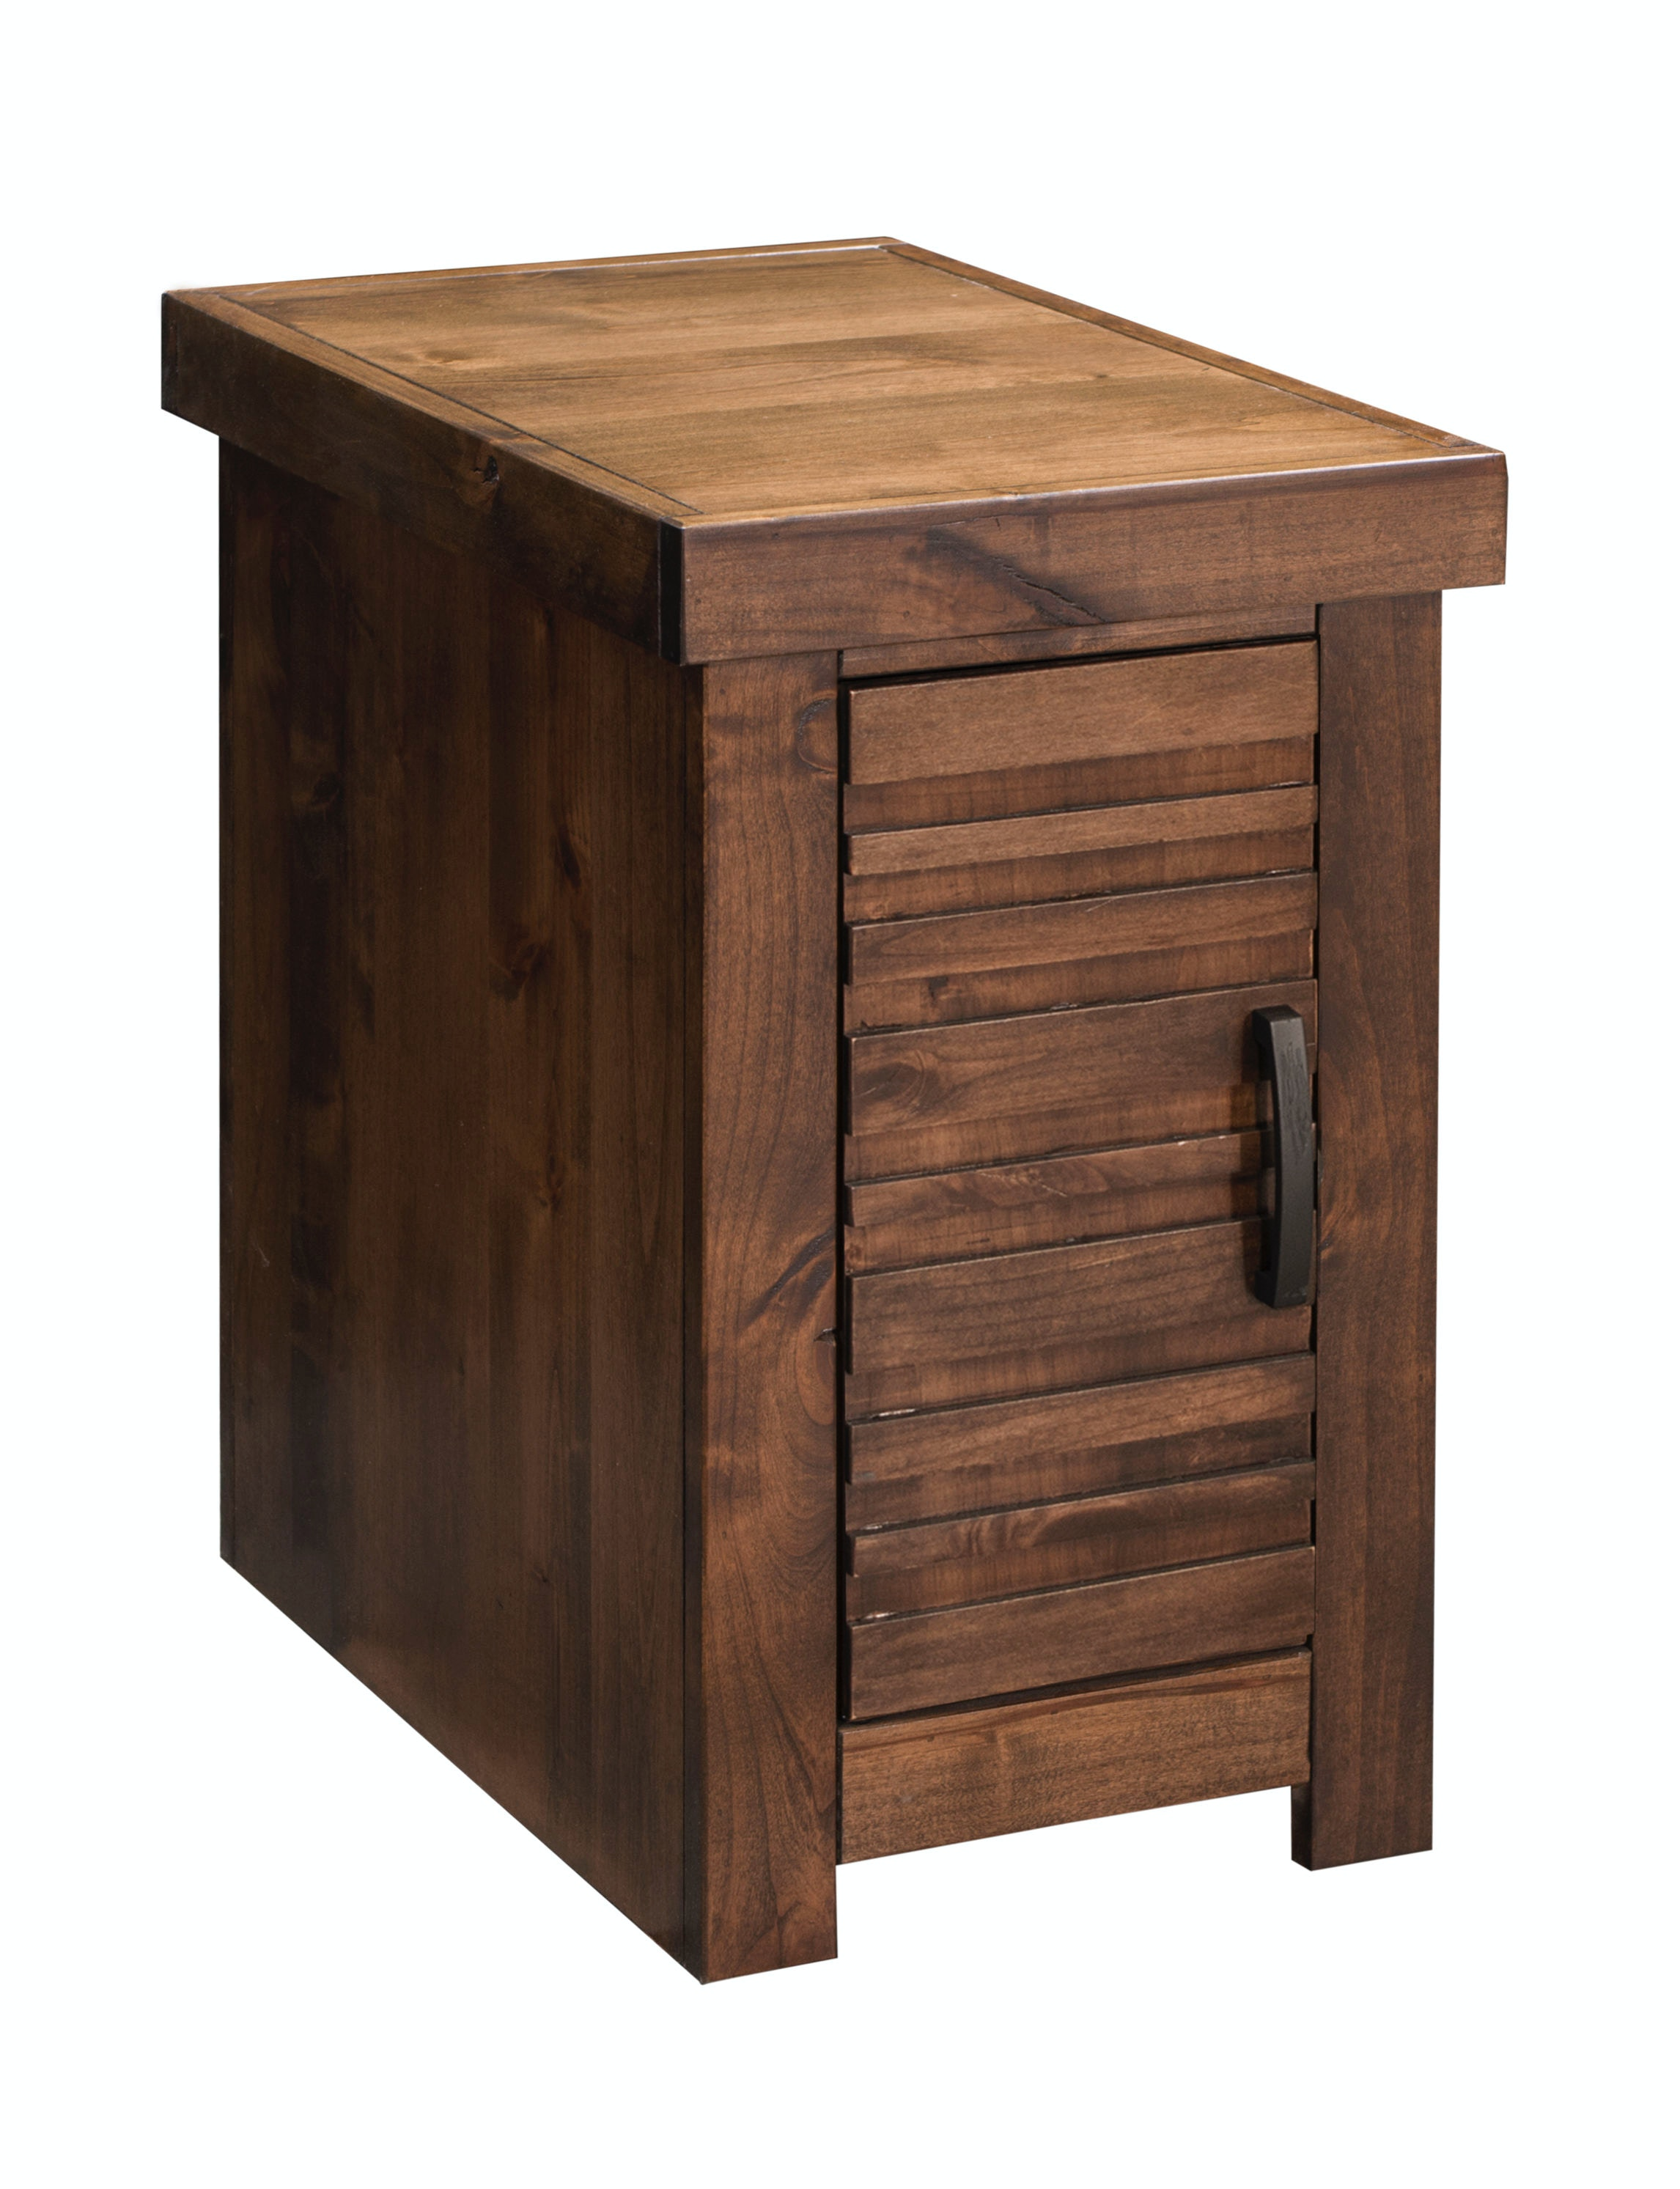 Legends Furniture Living Room Sausalito Chair Table W/Door SL4520.WKY At  Design Source Furniture